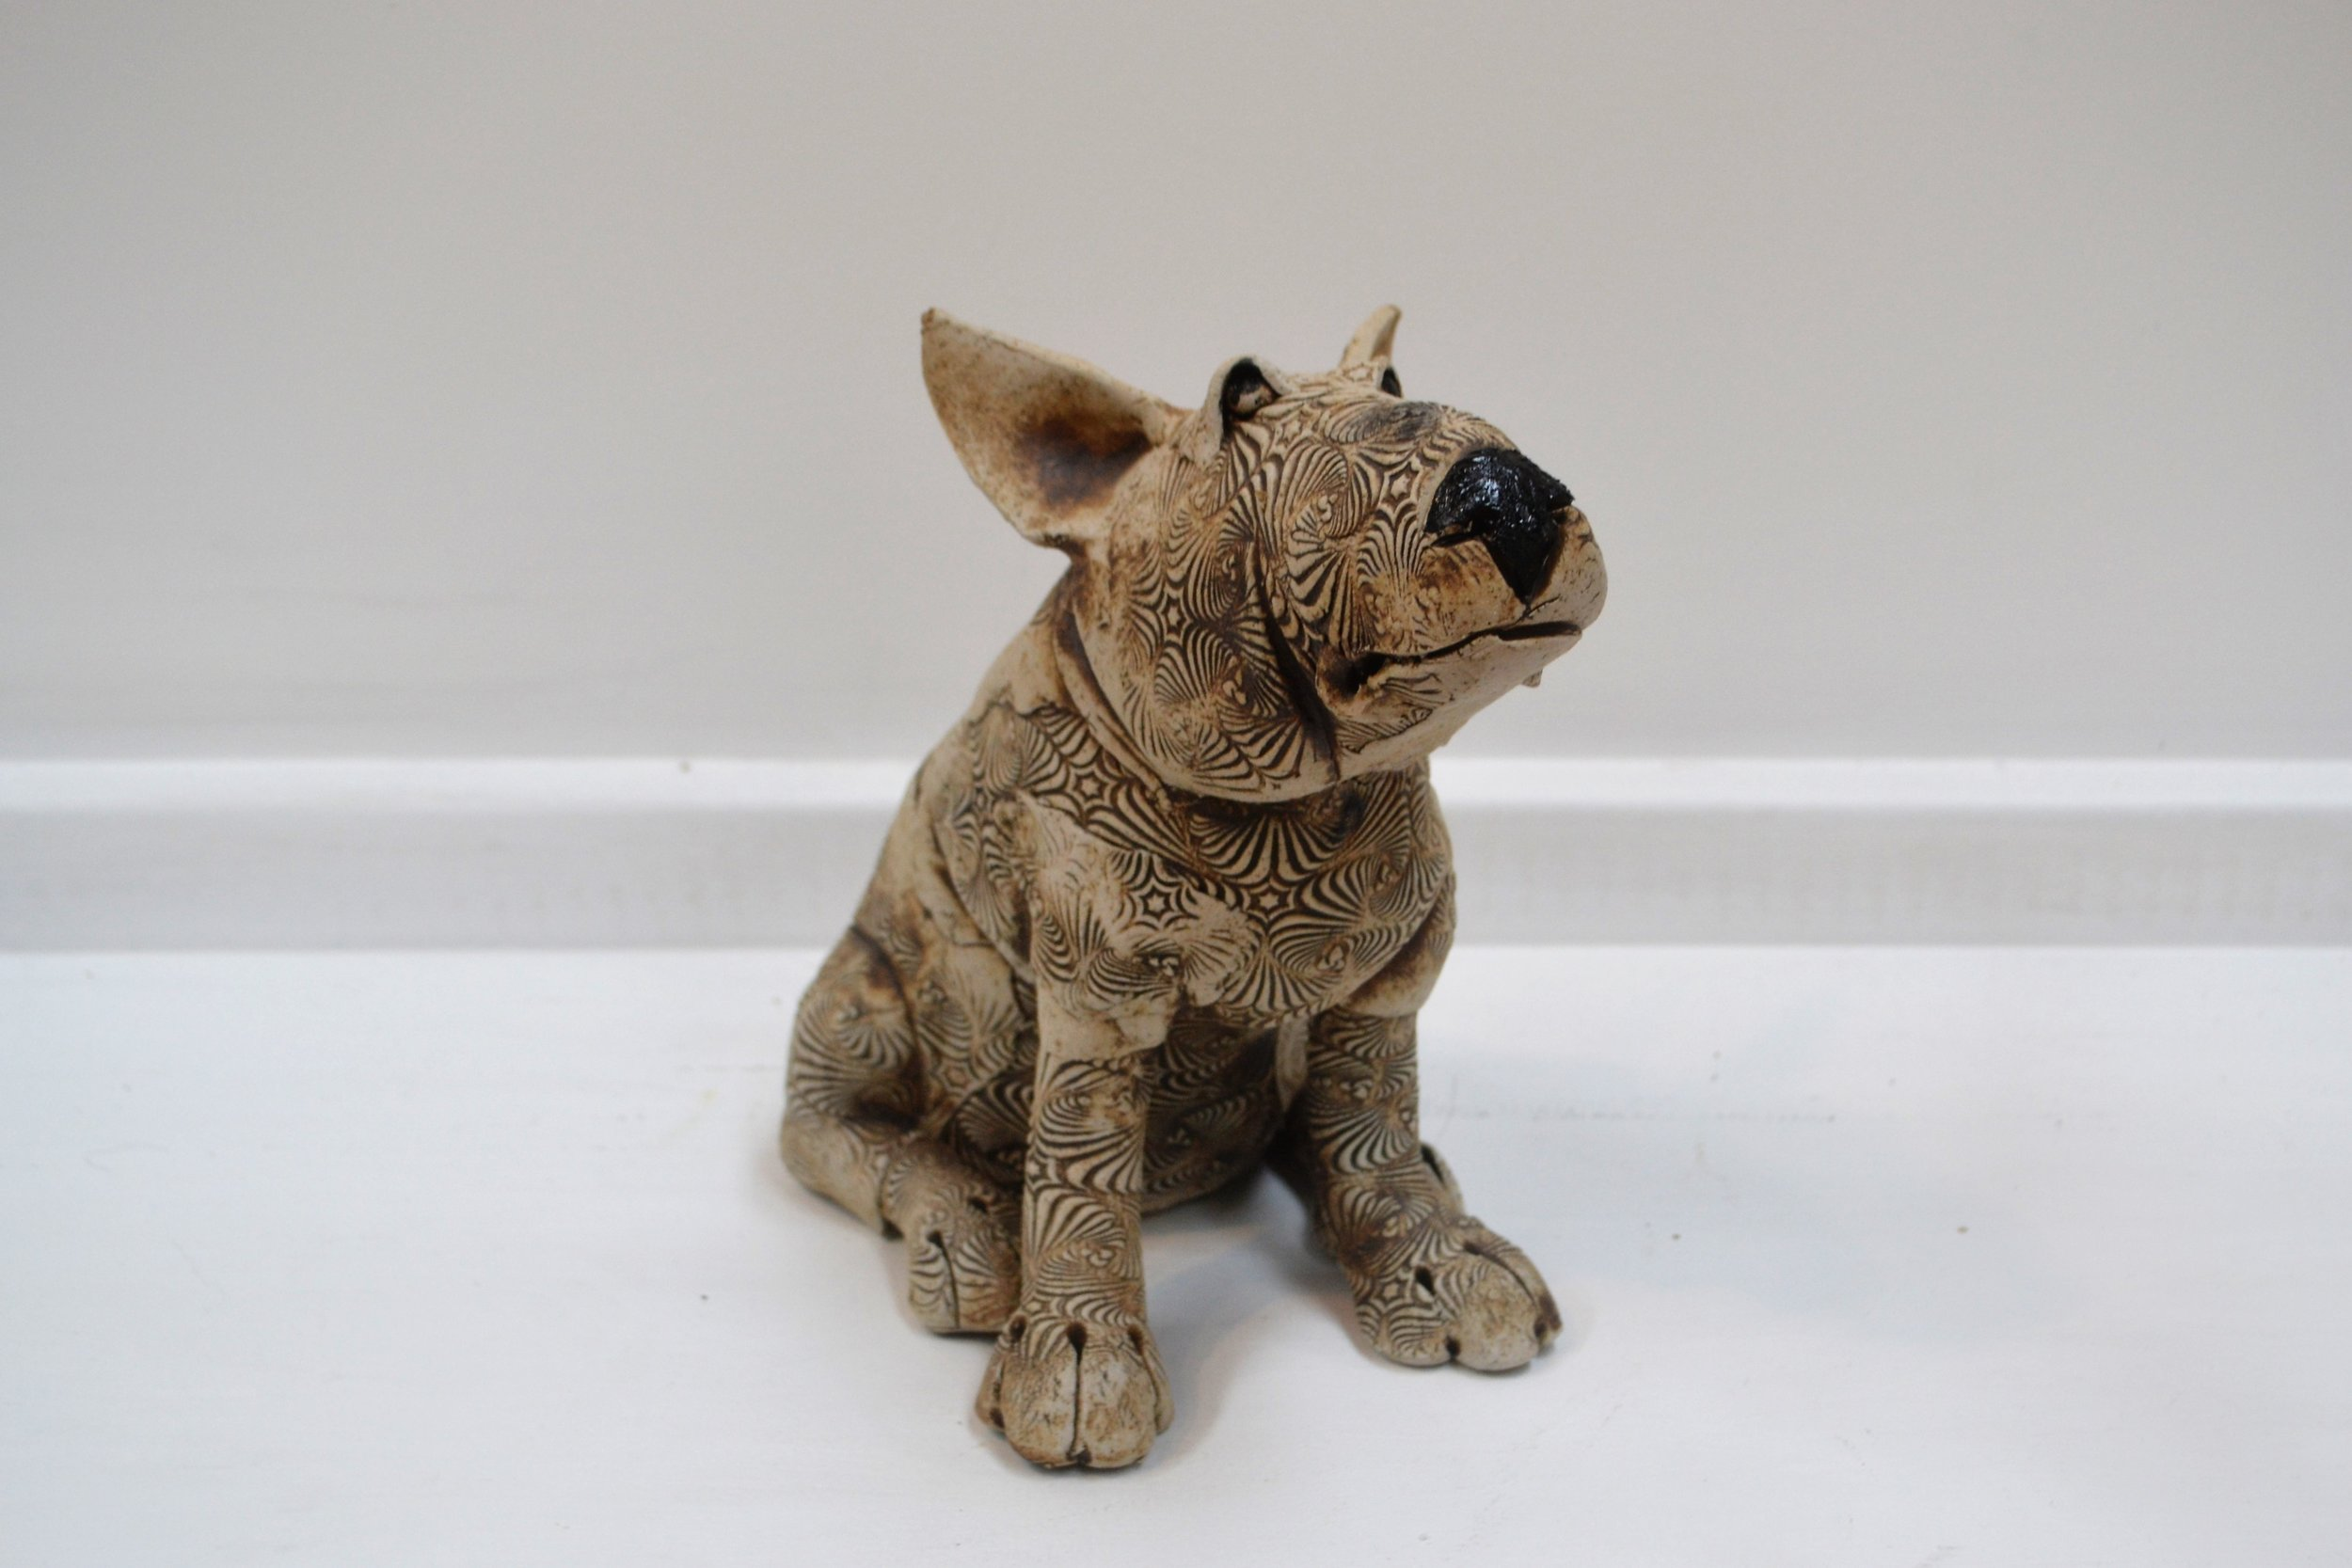 English Bull Terrier  Fiona Tunnicliffe, hand formed ceramic sculpture, 220mm height  sold